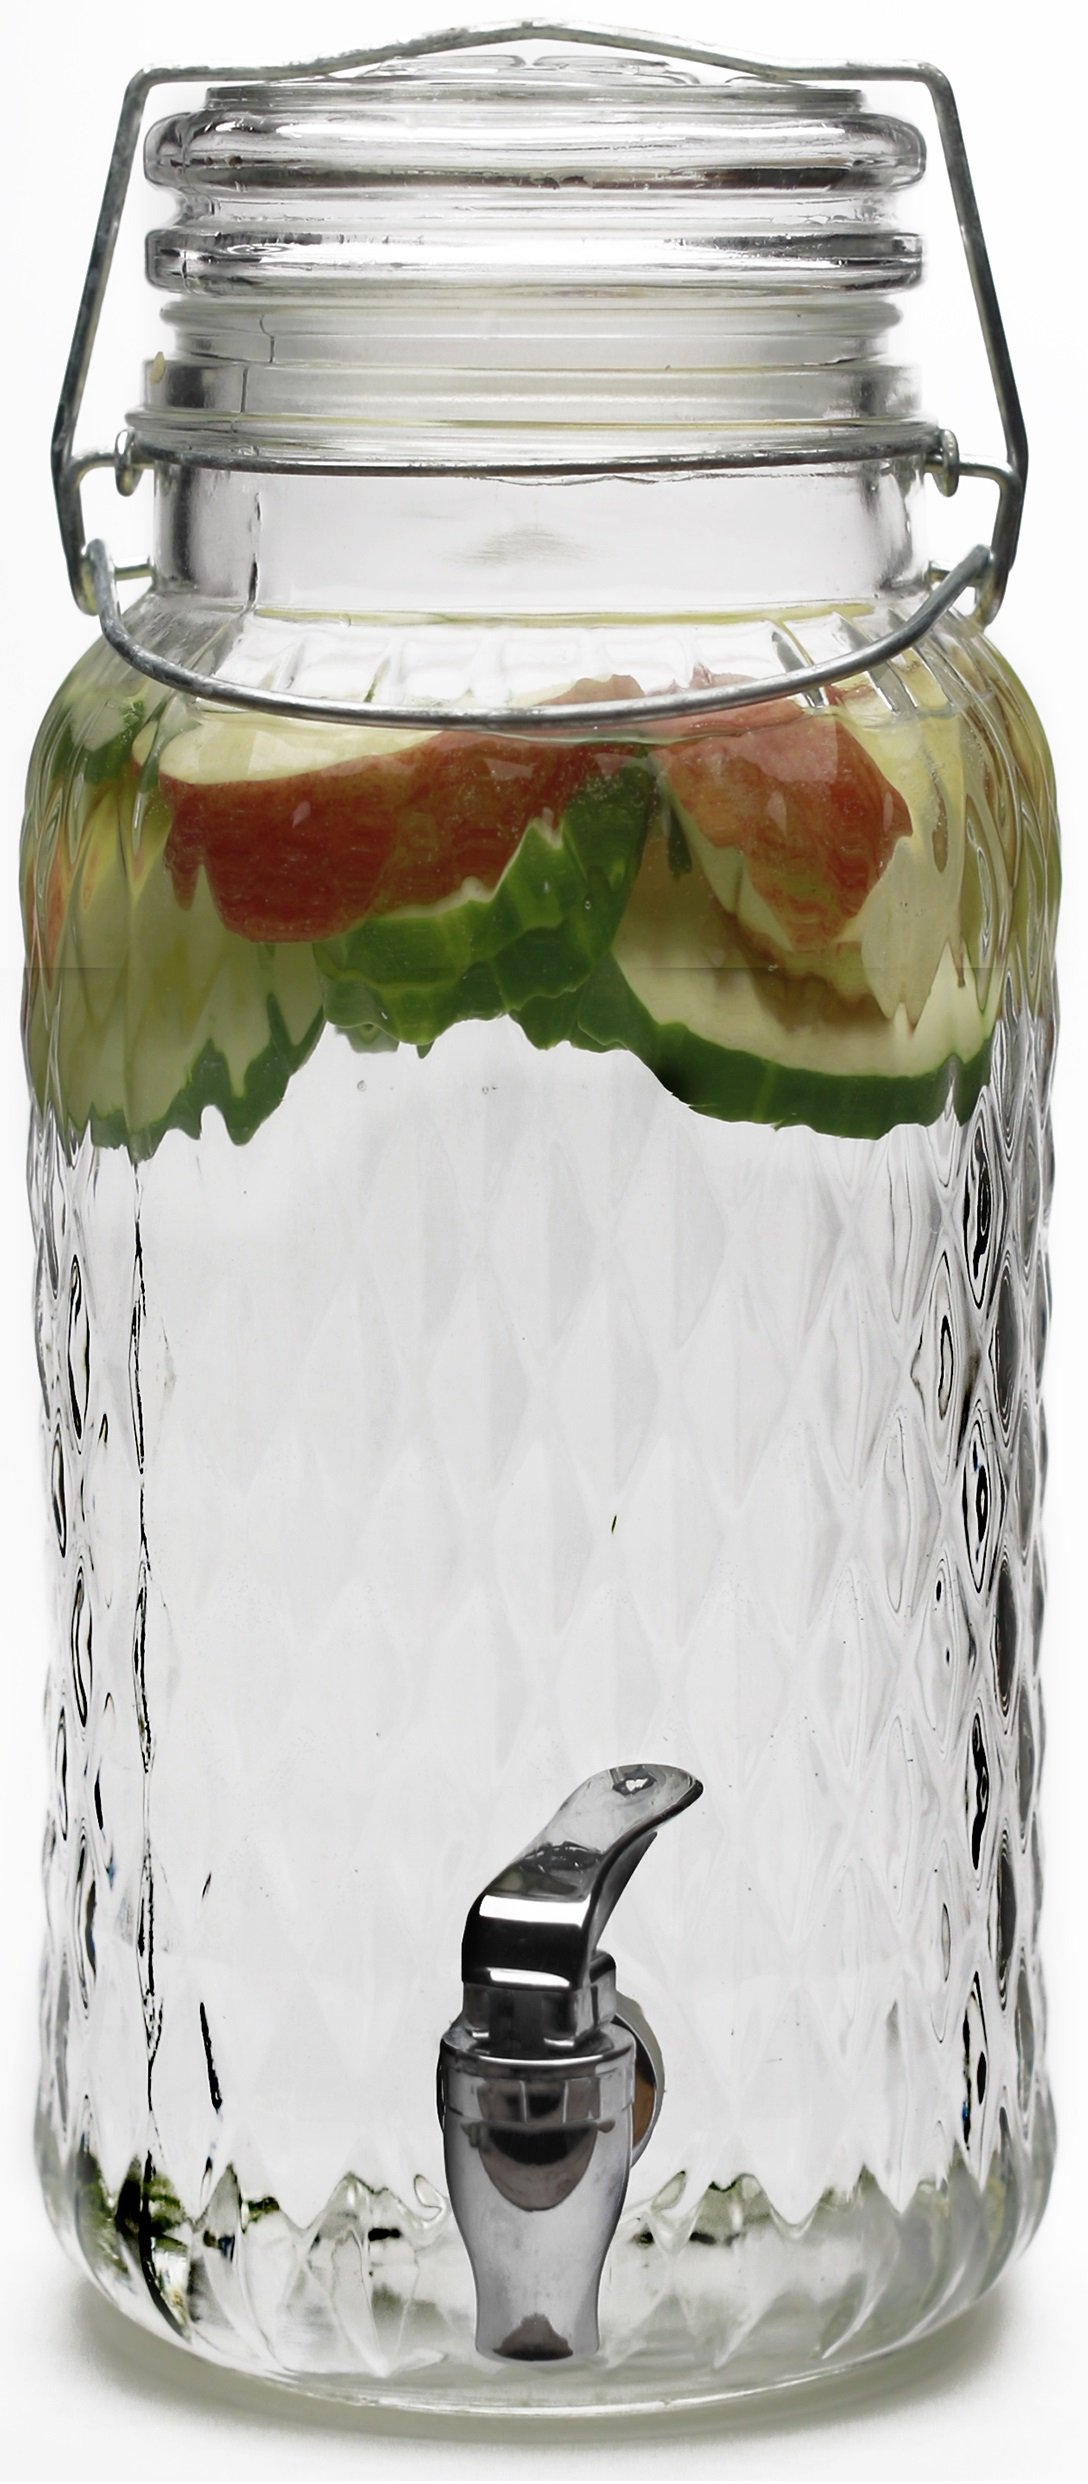 Circleware 69117 Glass Beverage Drink Dispenser Jar with Hermetic Locking Lid Clear, for Water, Juice, Kombucha, Beer and Iced Tea, 1 gallon